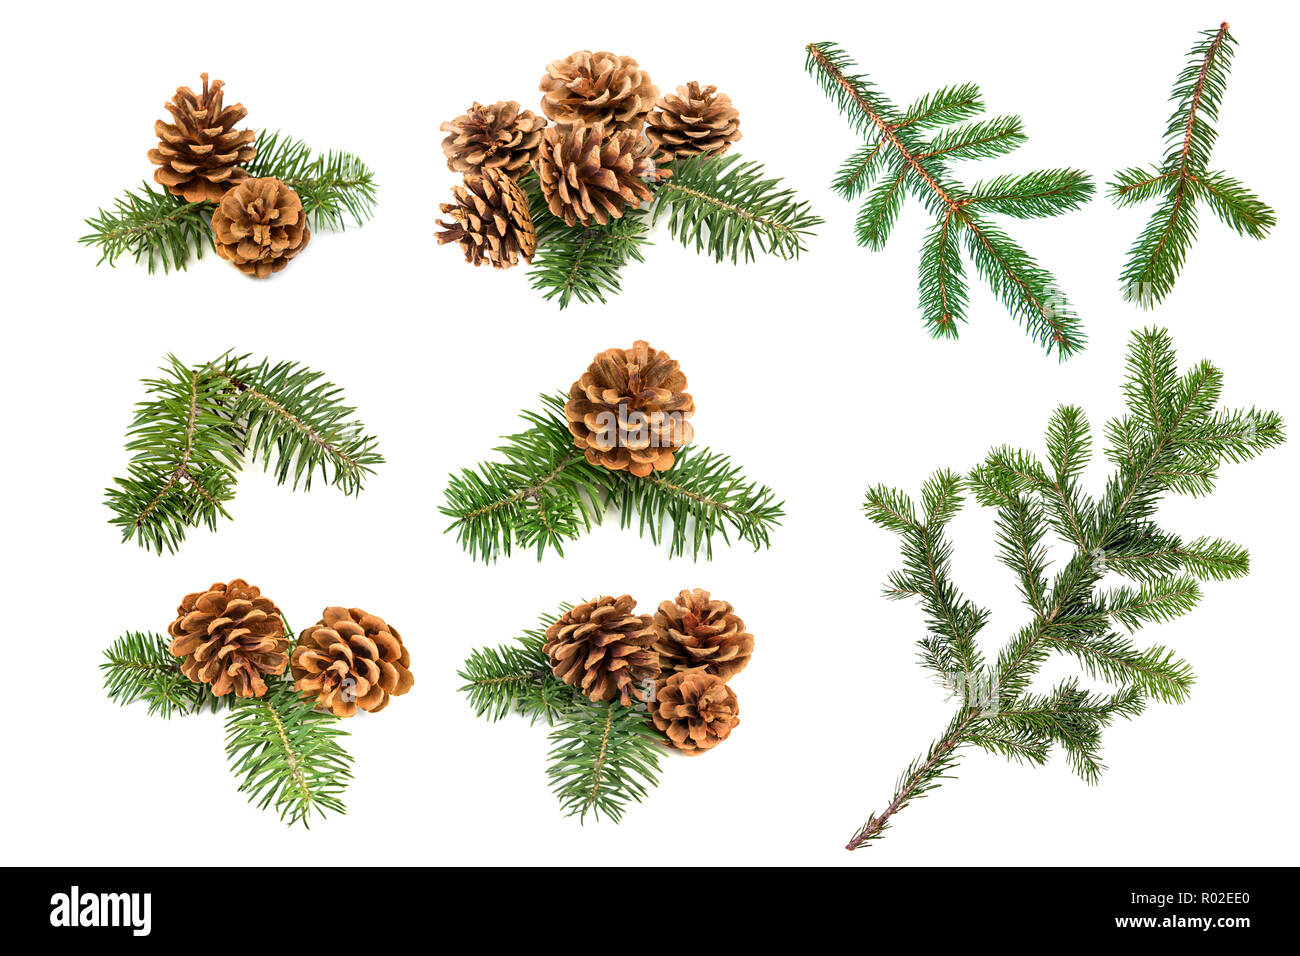 Set of christmas pine cones and branches isolated on a white background - Stock Image